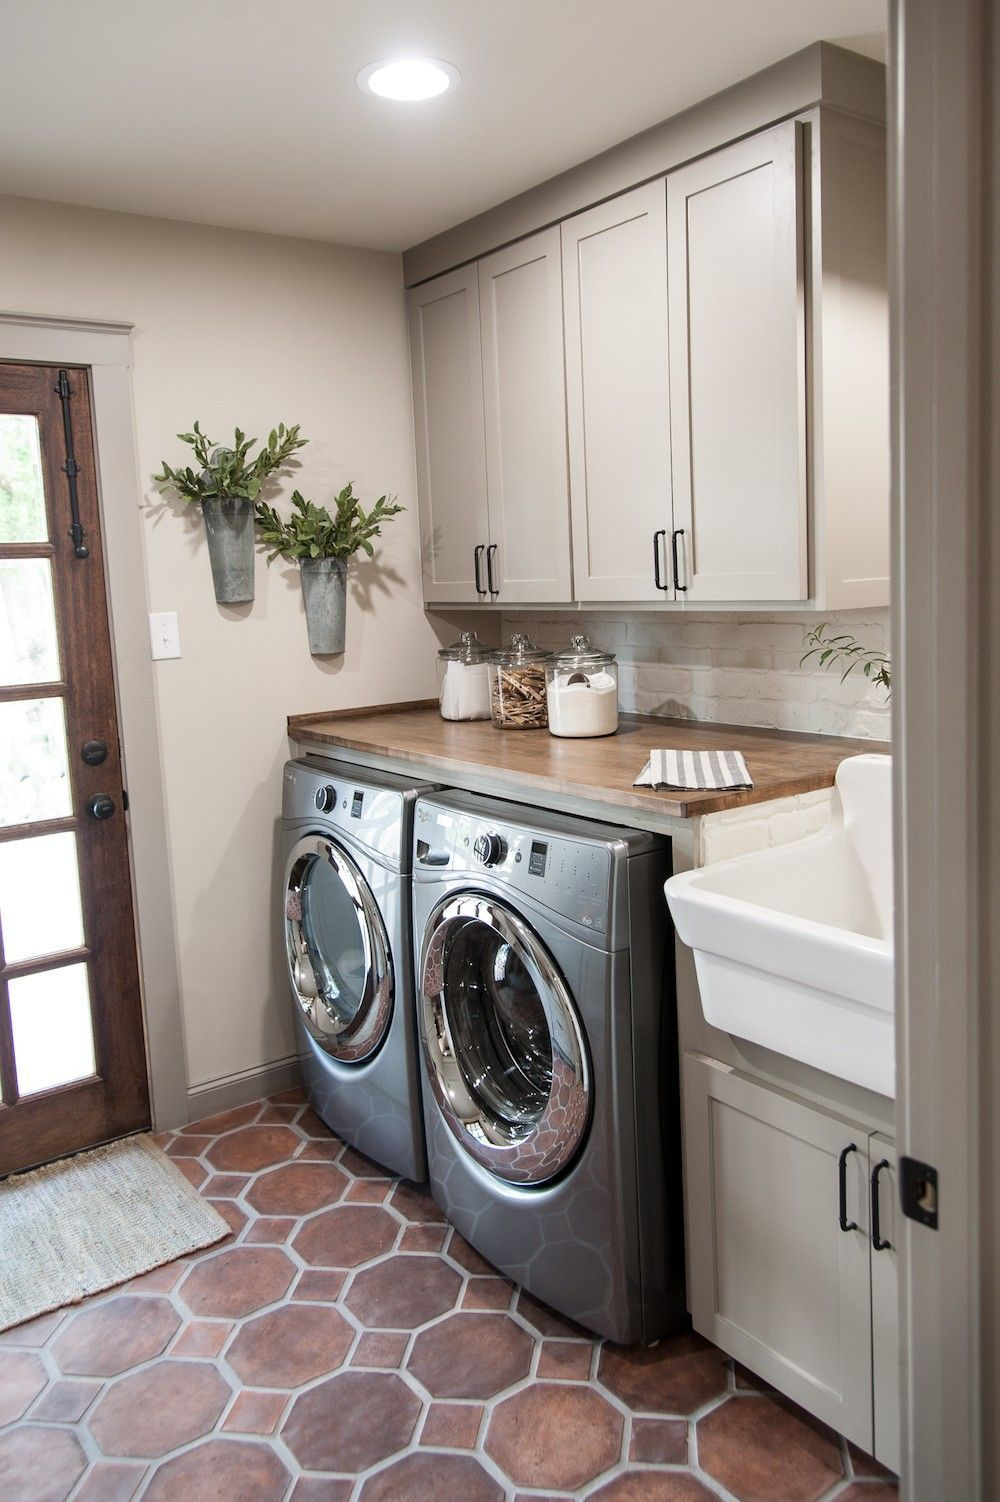 Hallway storage next  Budget Laundry Room Makeover Reveal  Craving some Creativity Small